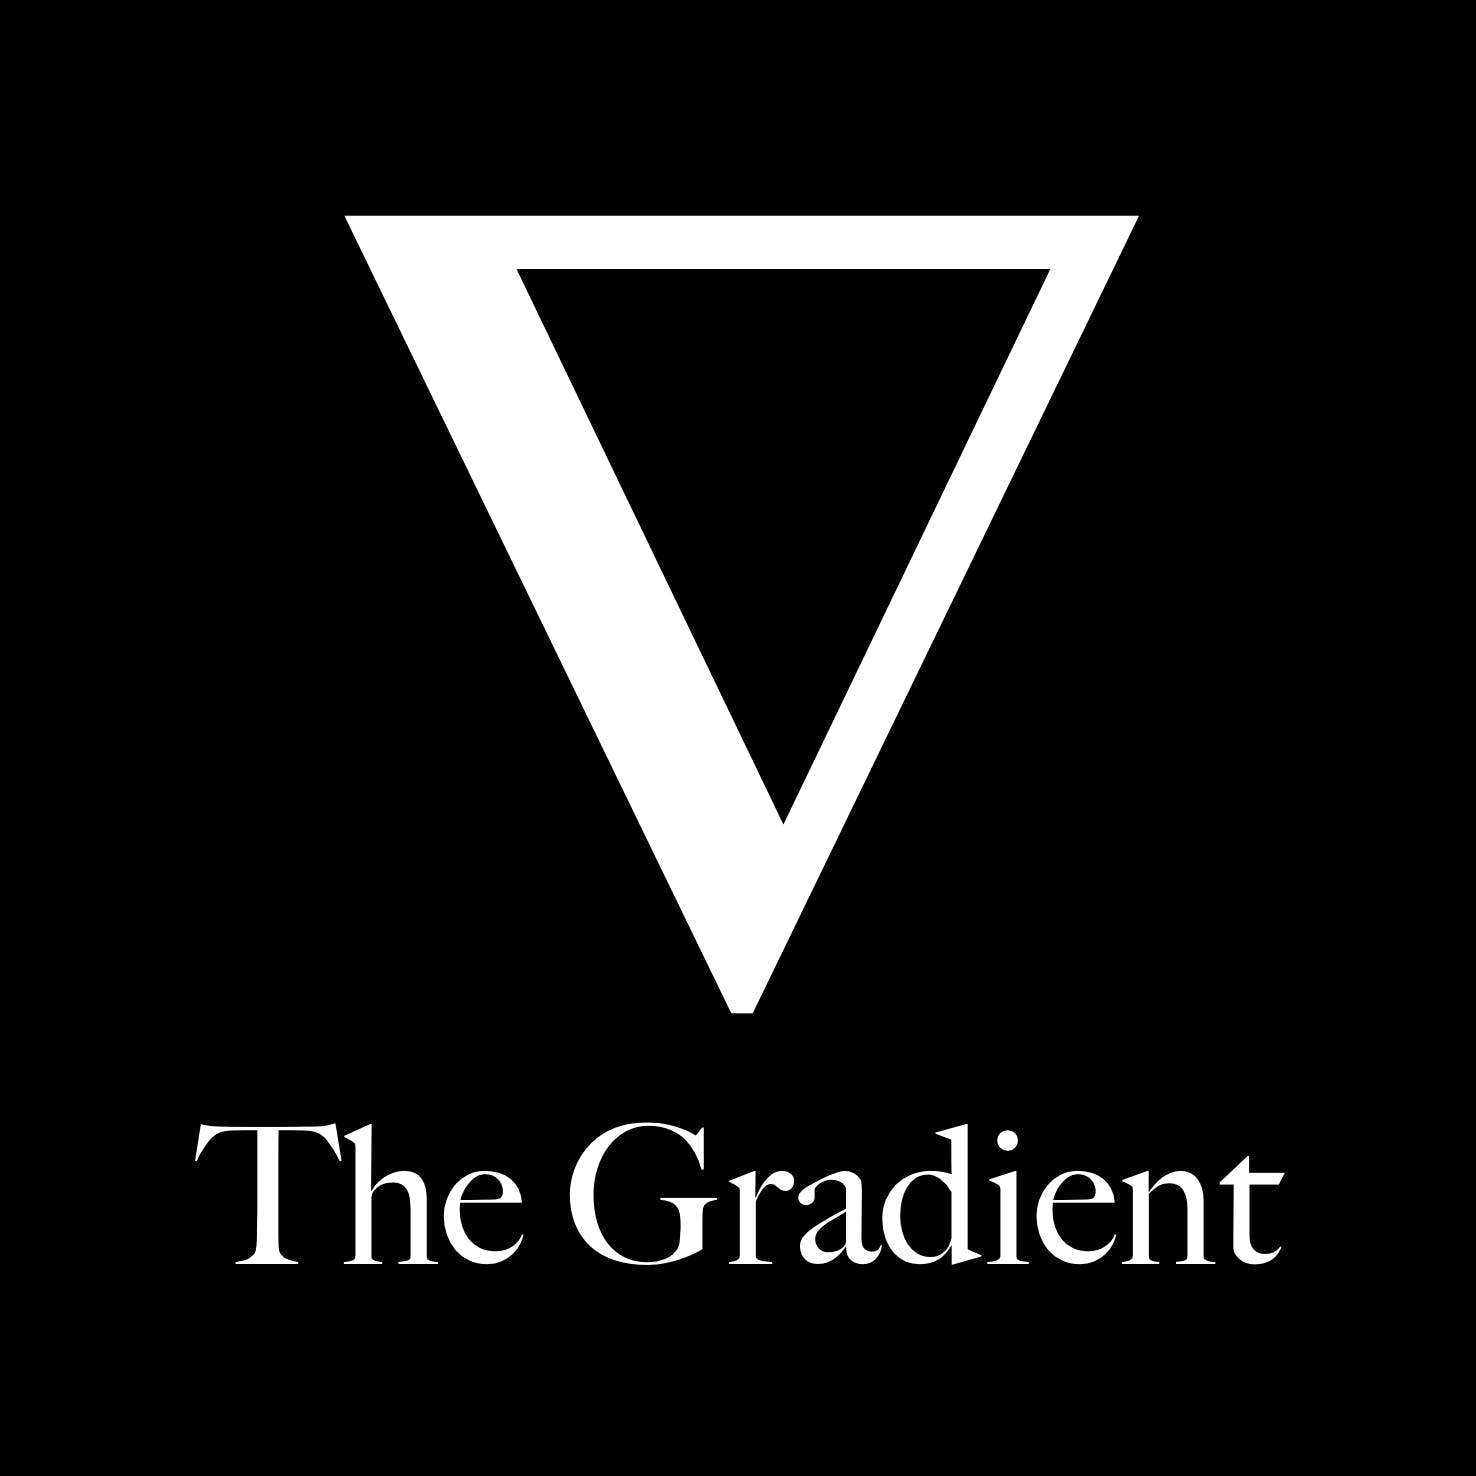 The Gradient Podcast